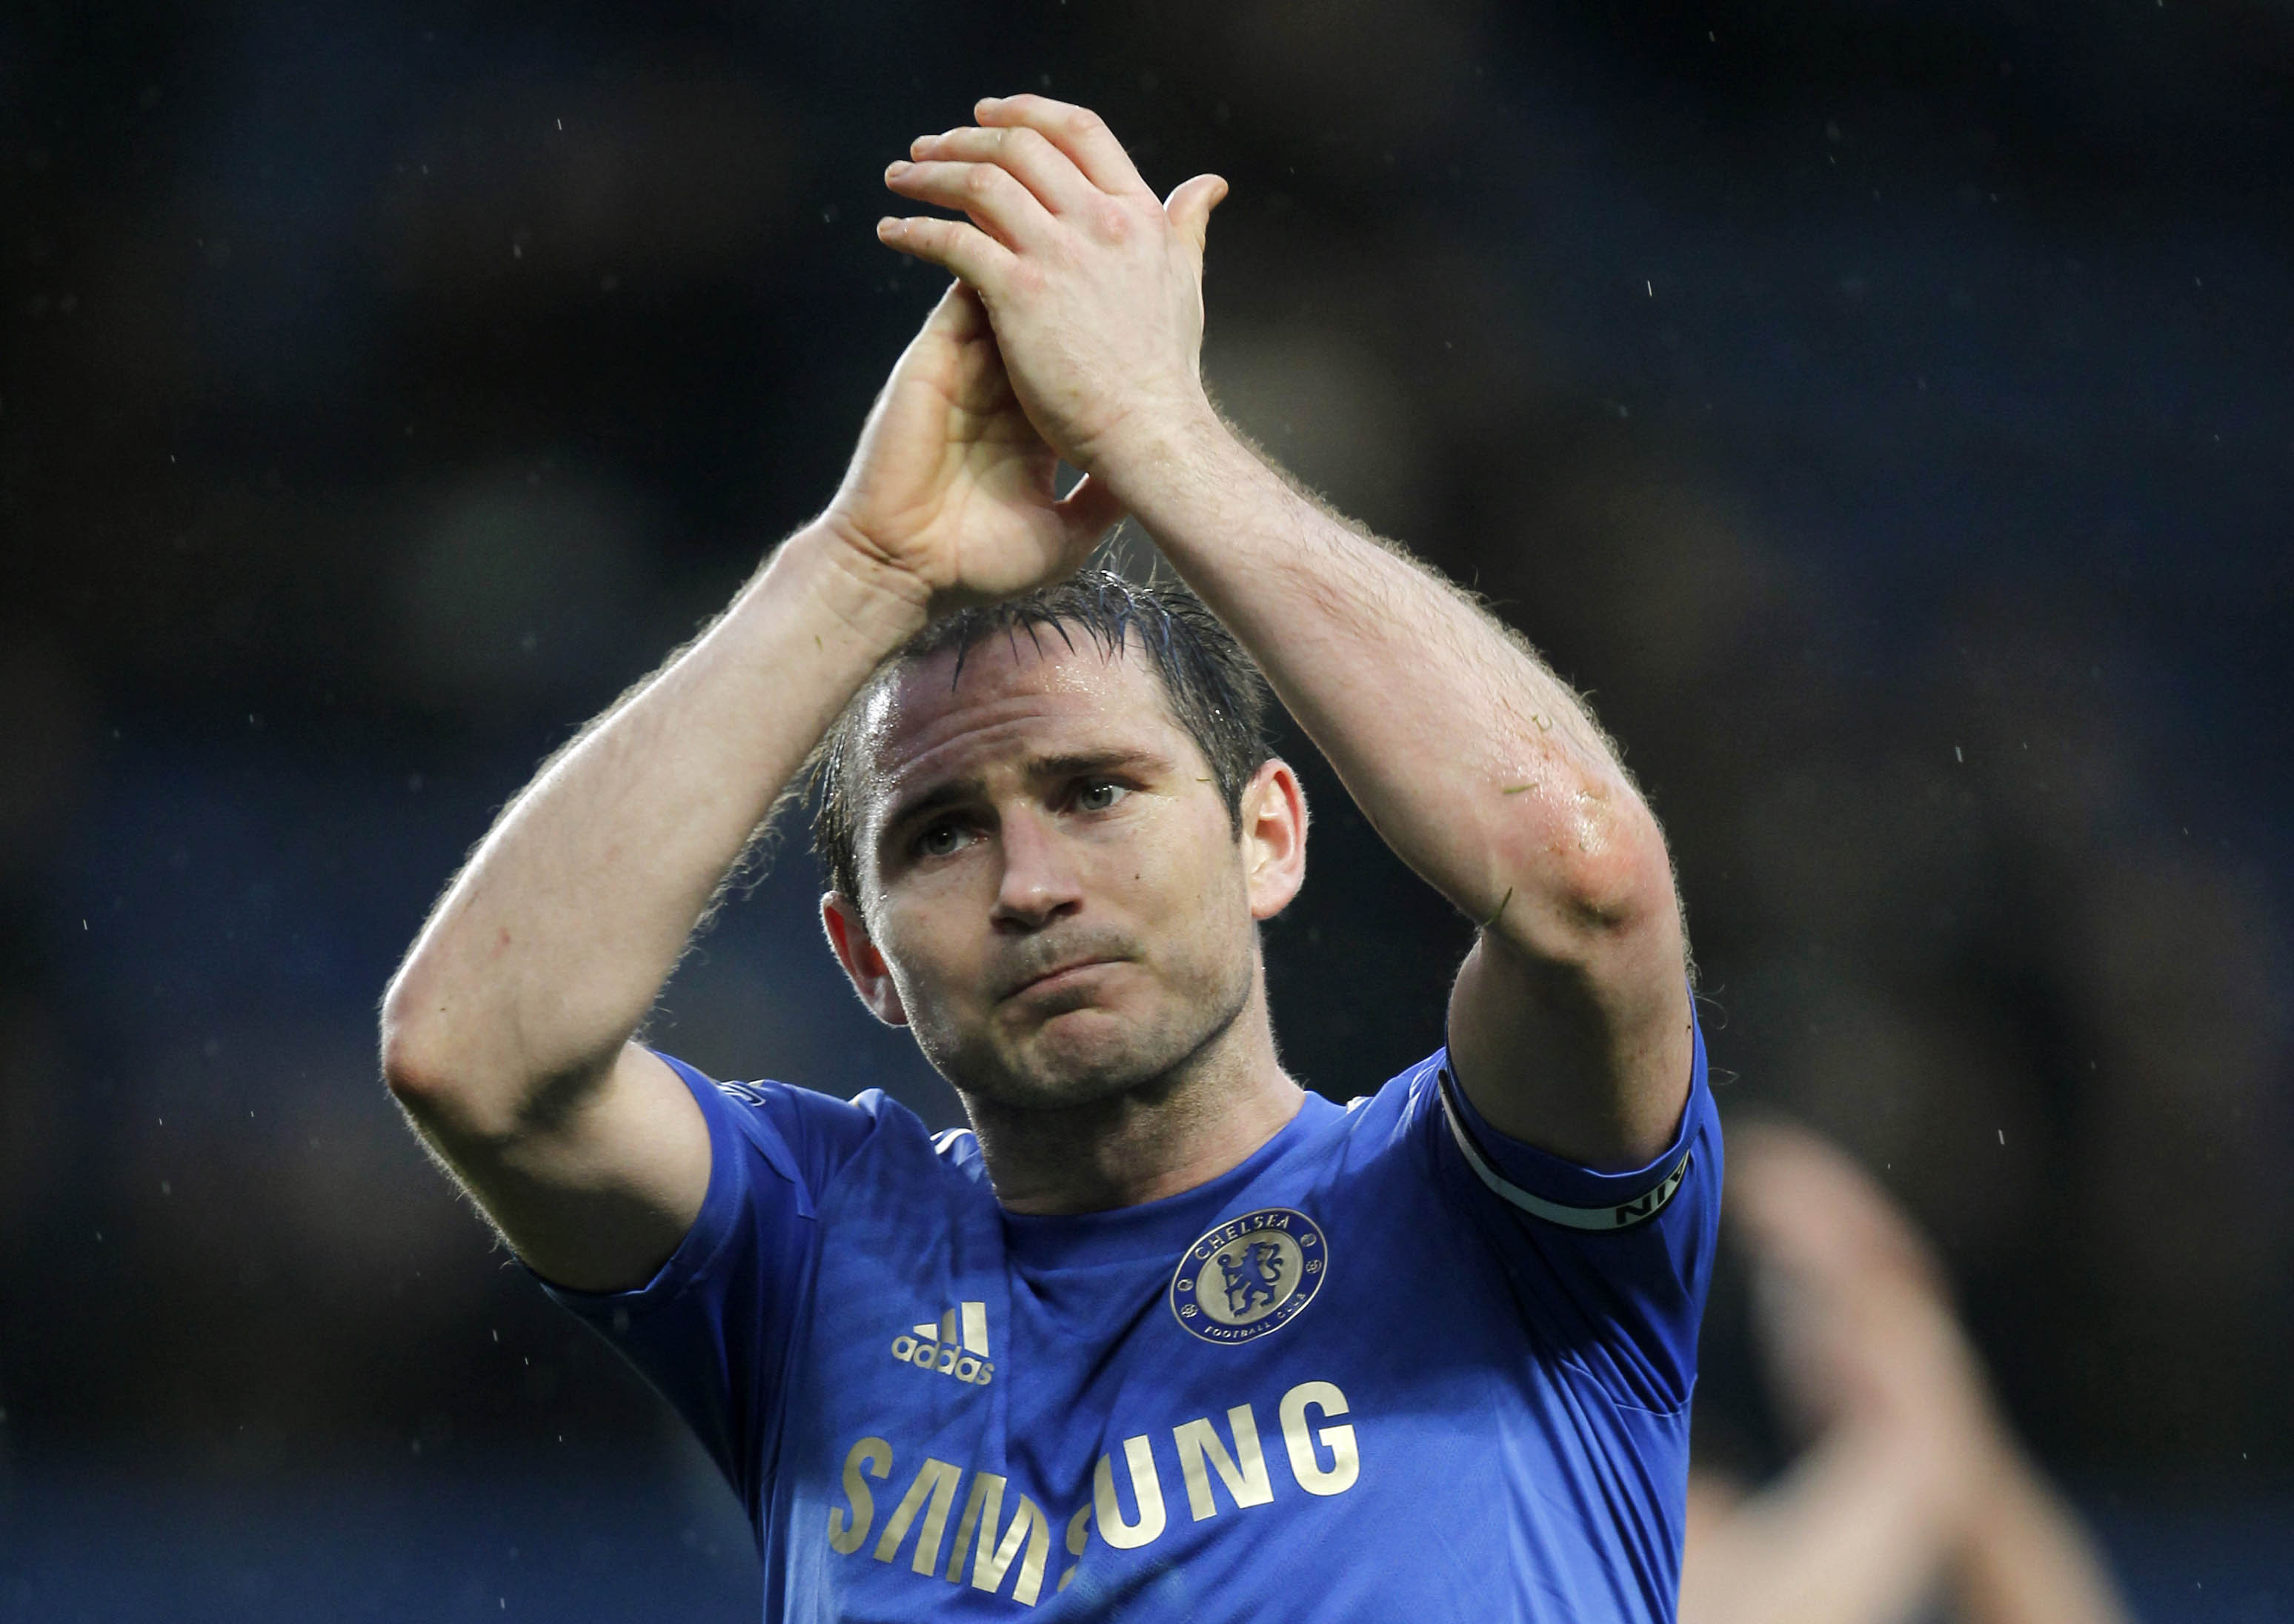 Lampard Chelsea best midfielder ever